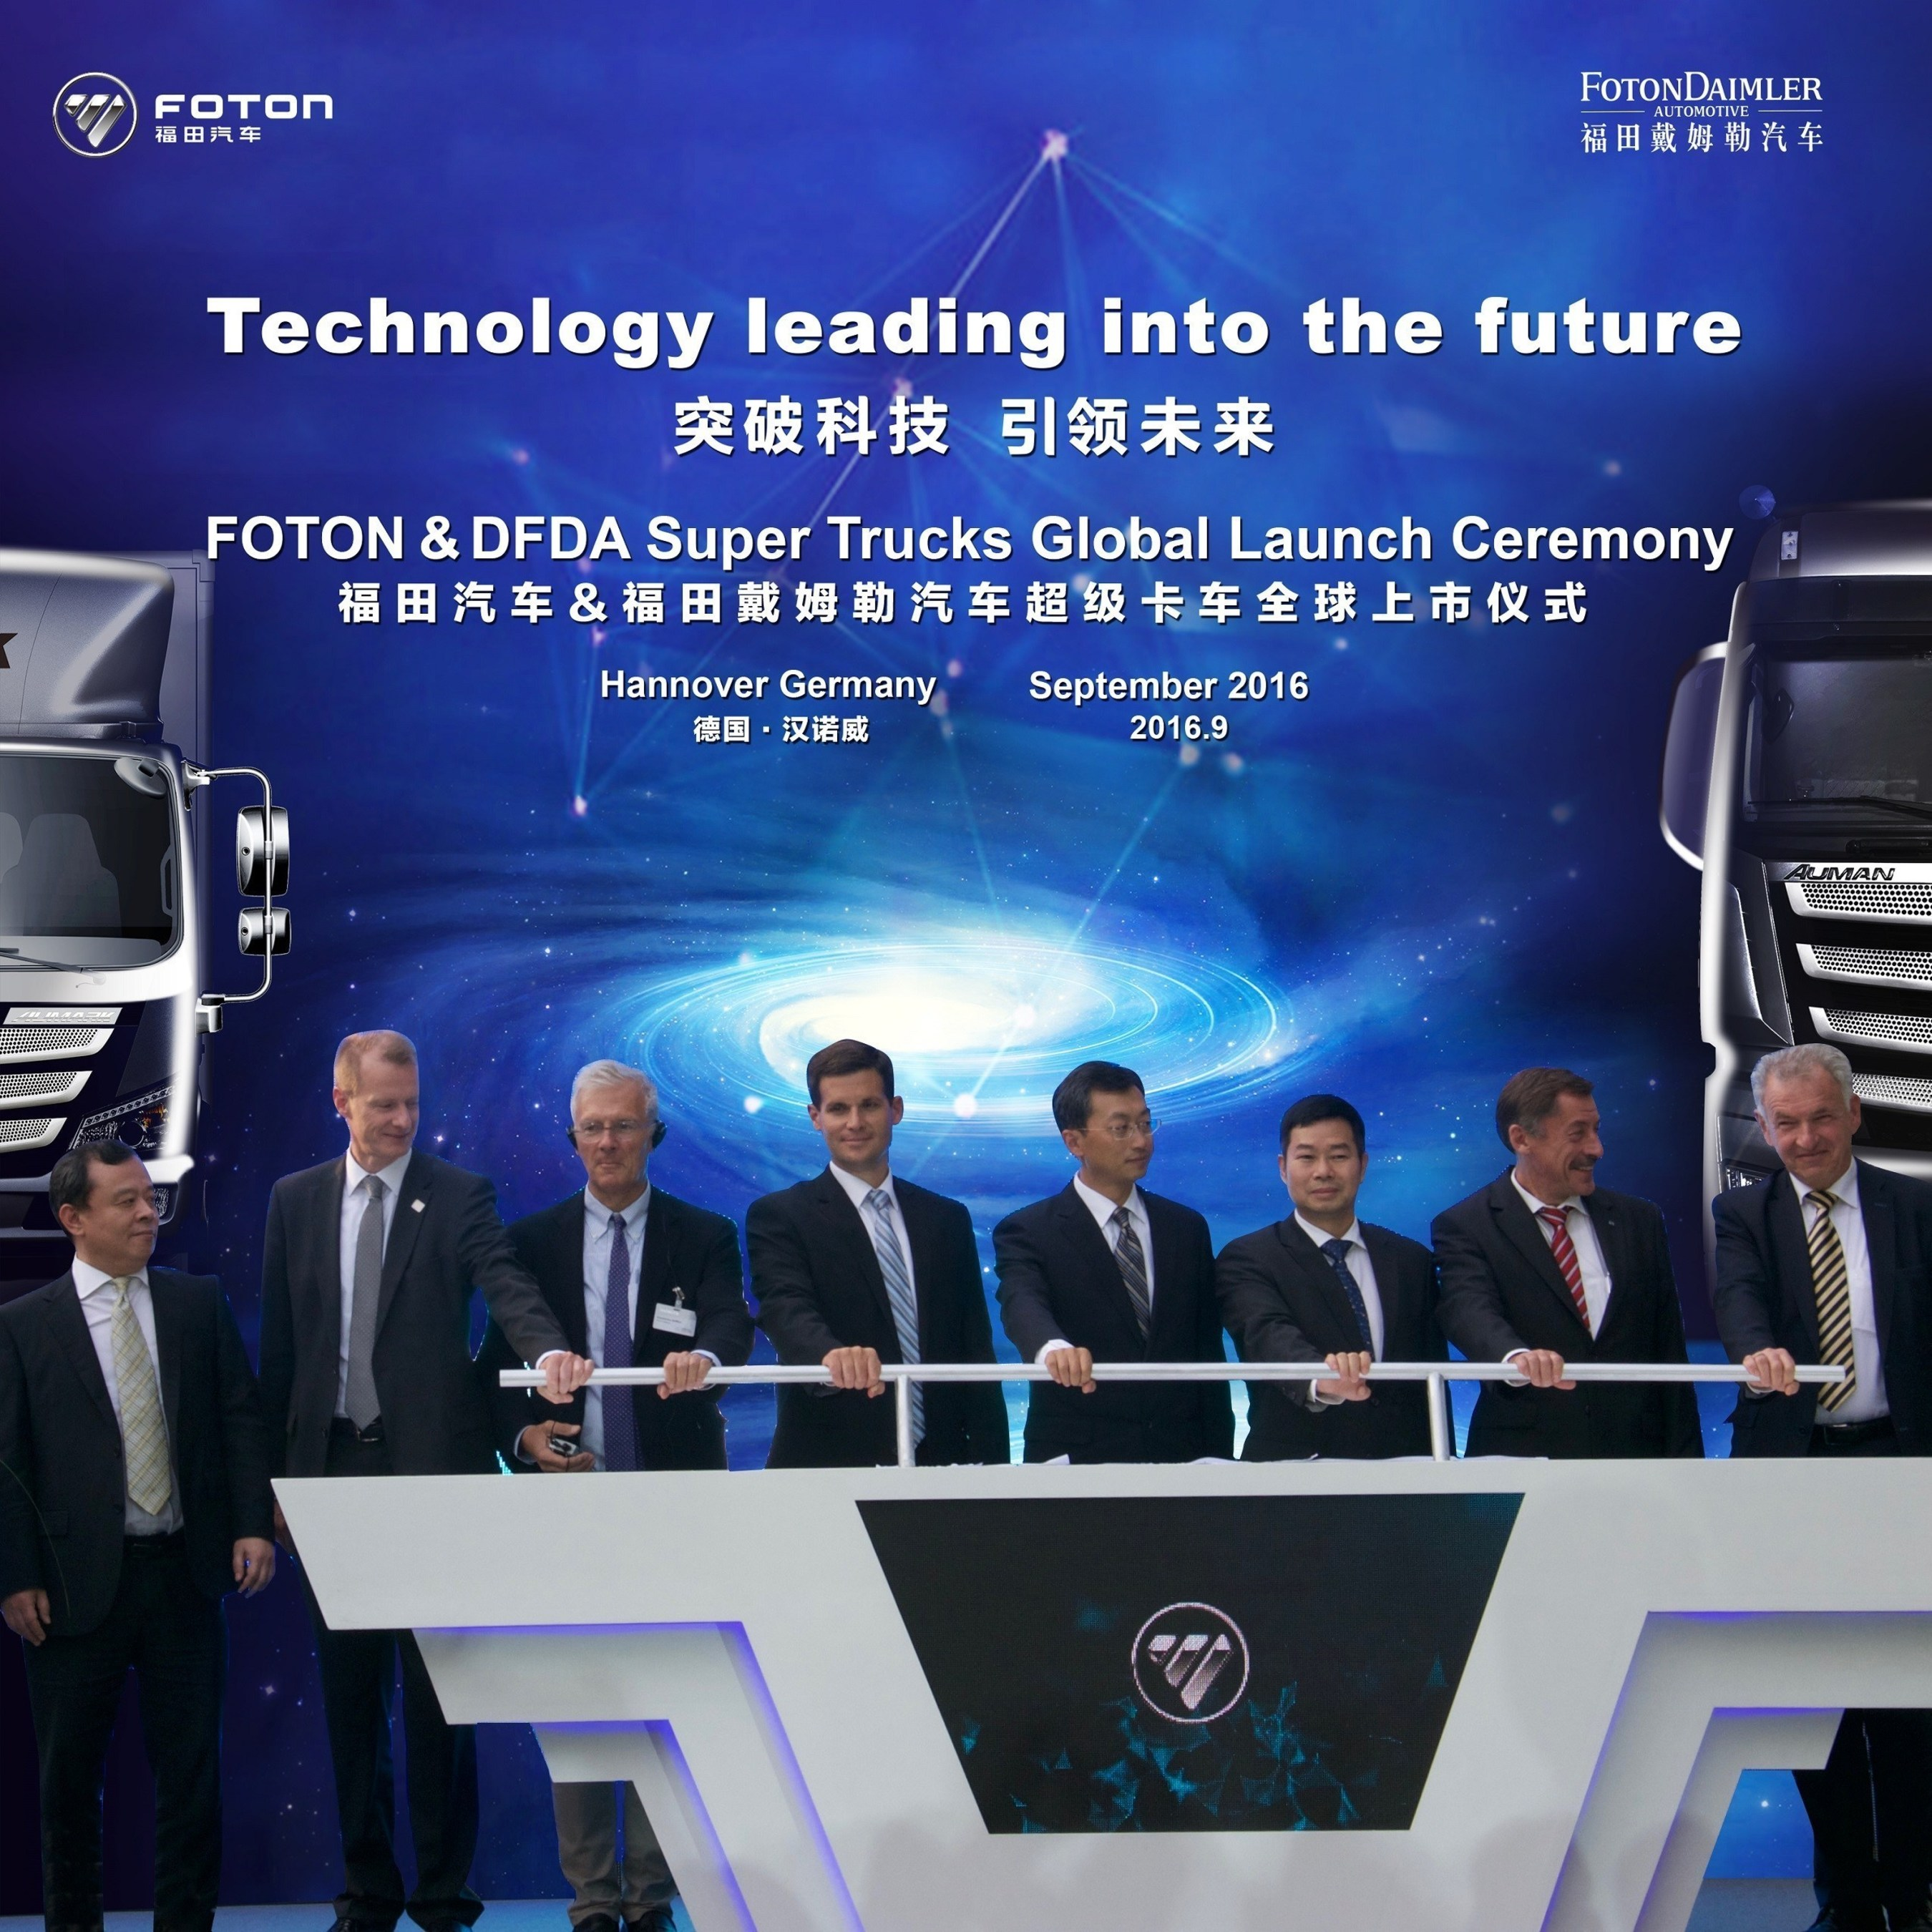 Foton Super Trucks go to market at IAA Commercial Vehicles in Hanover, joining the world's leading commercial vehicle leaders, with the aim of creating a future led by green intelligent logistics